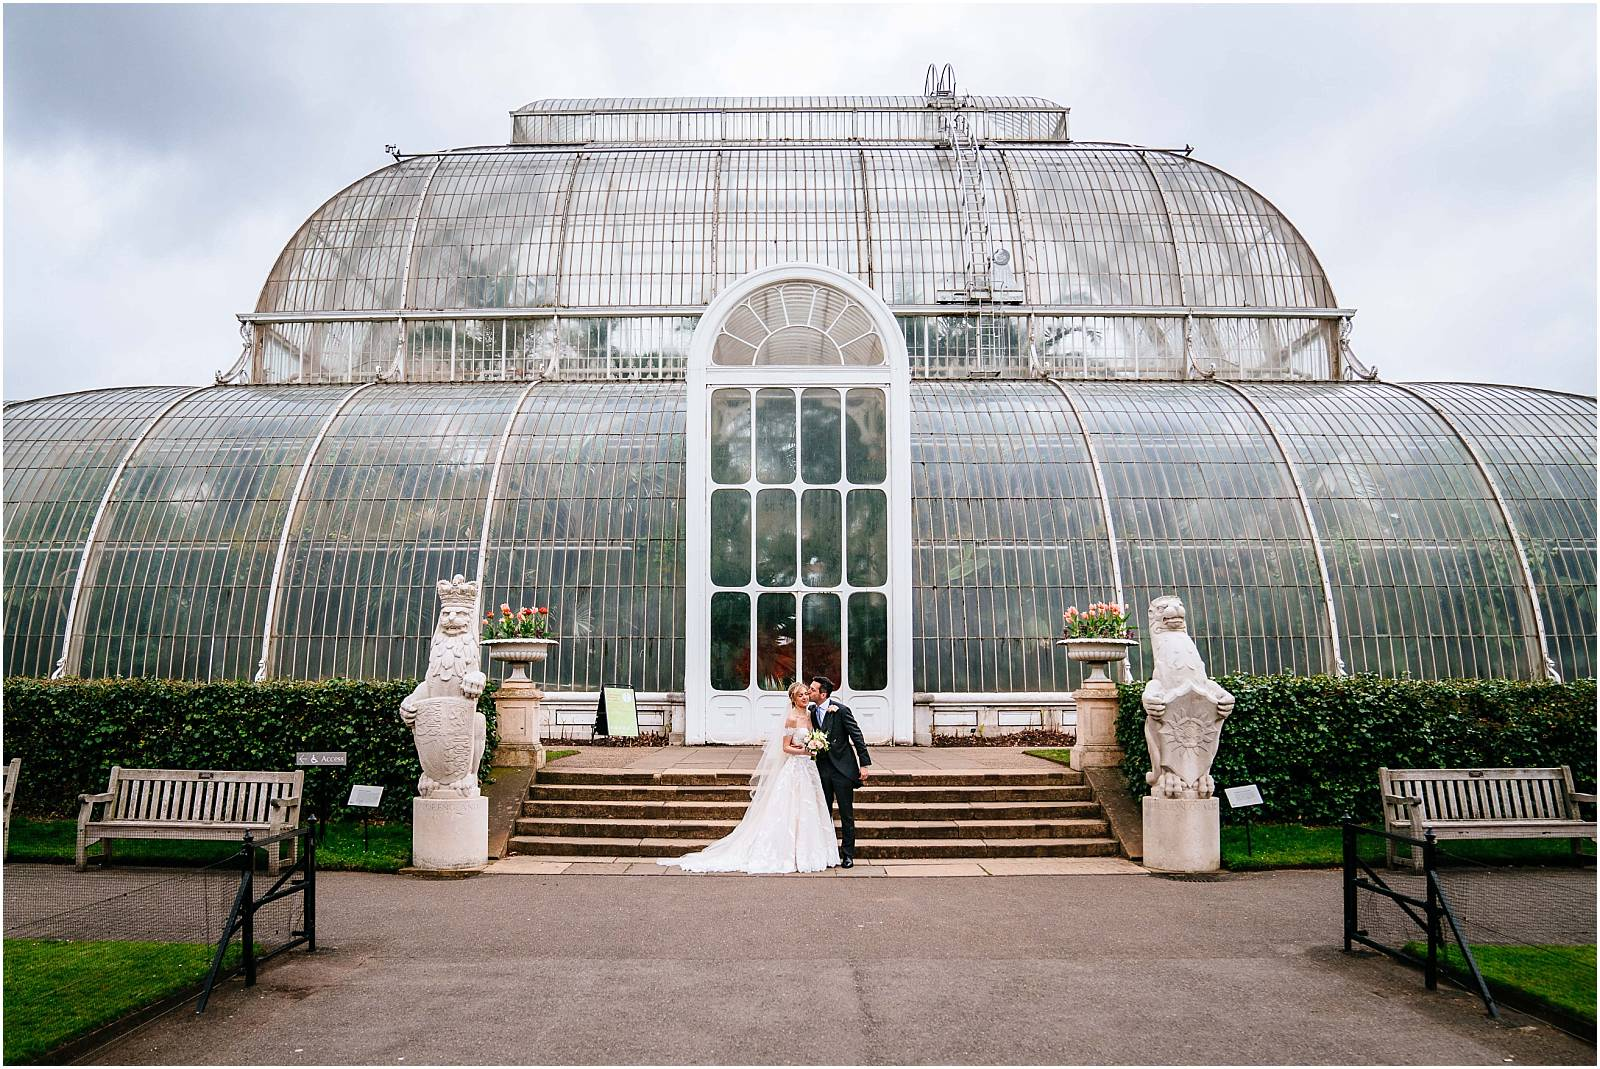 Kew Gardens wedding photography